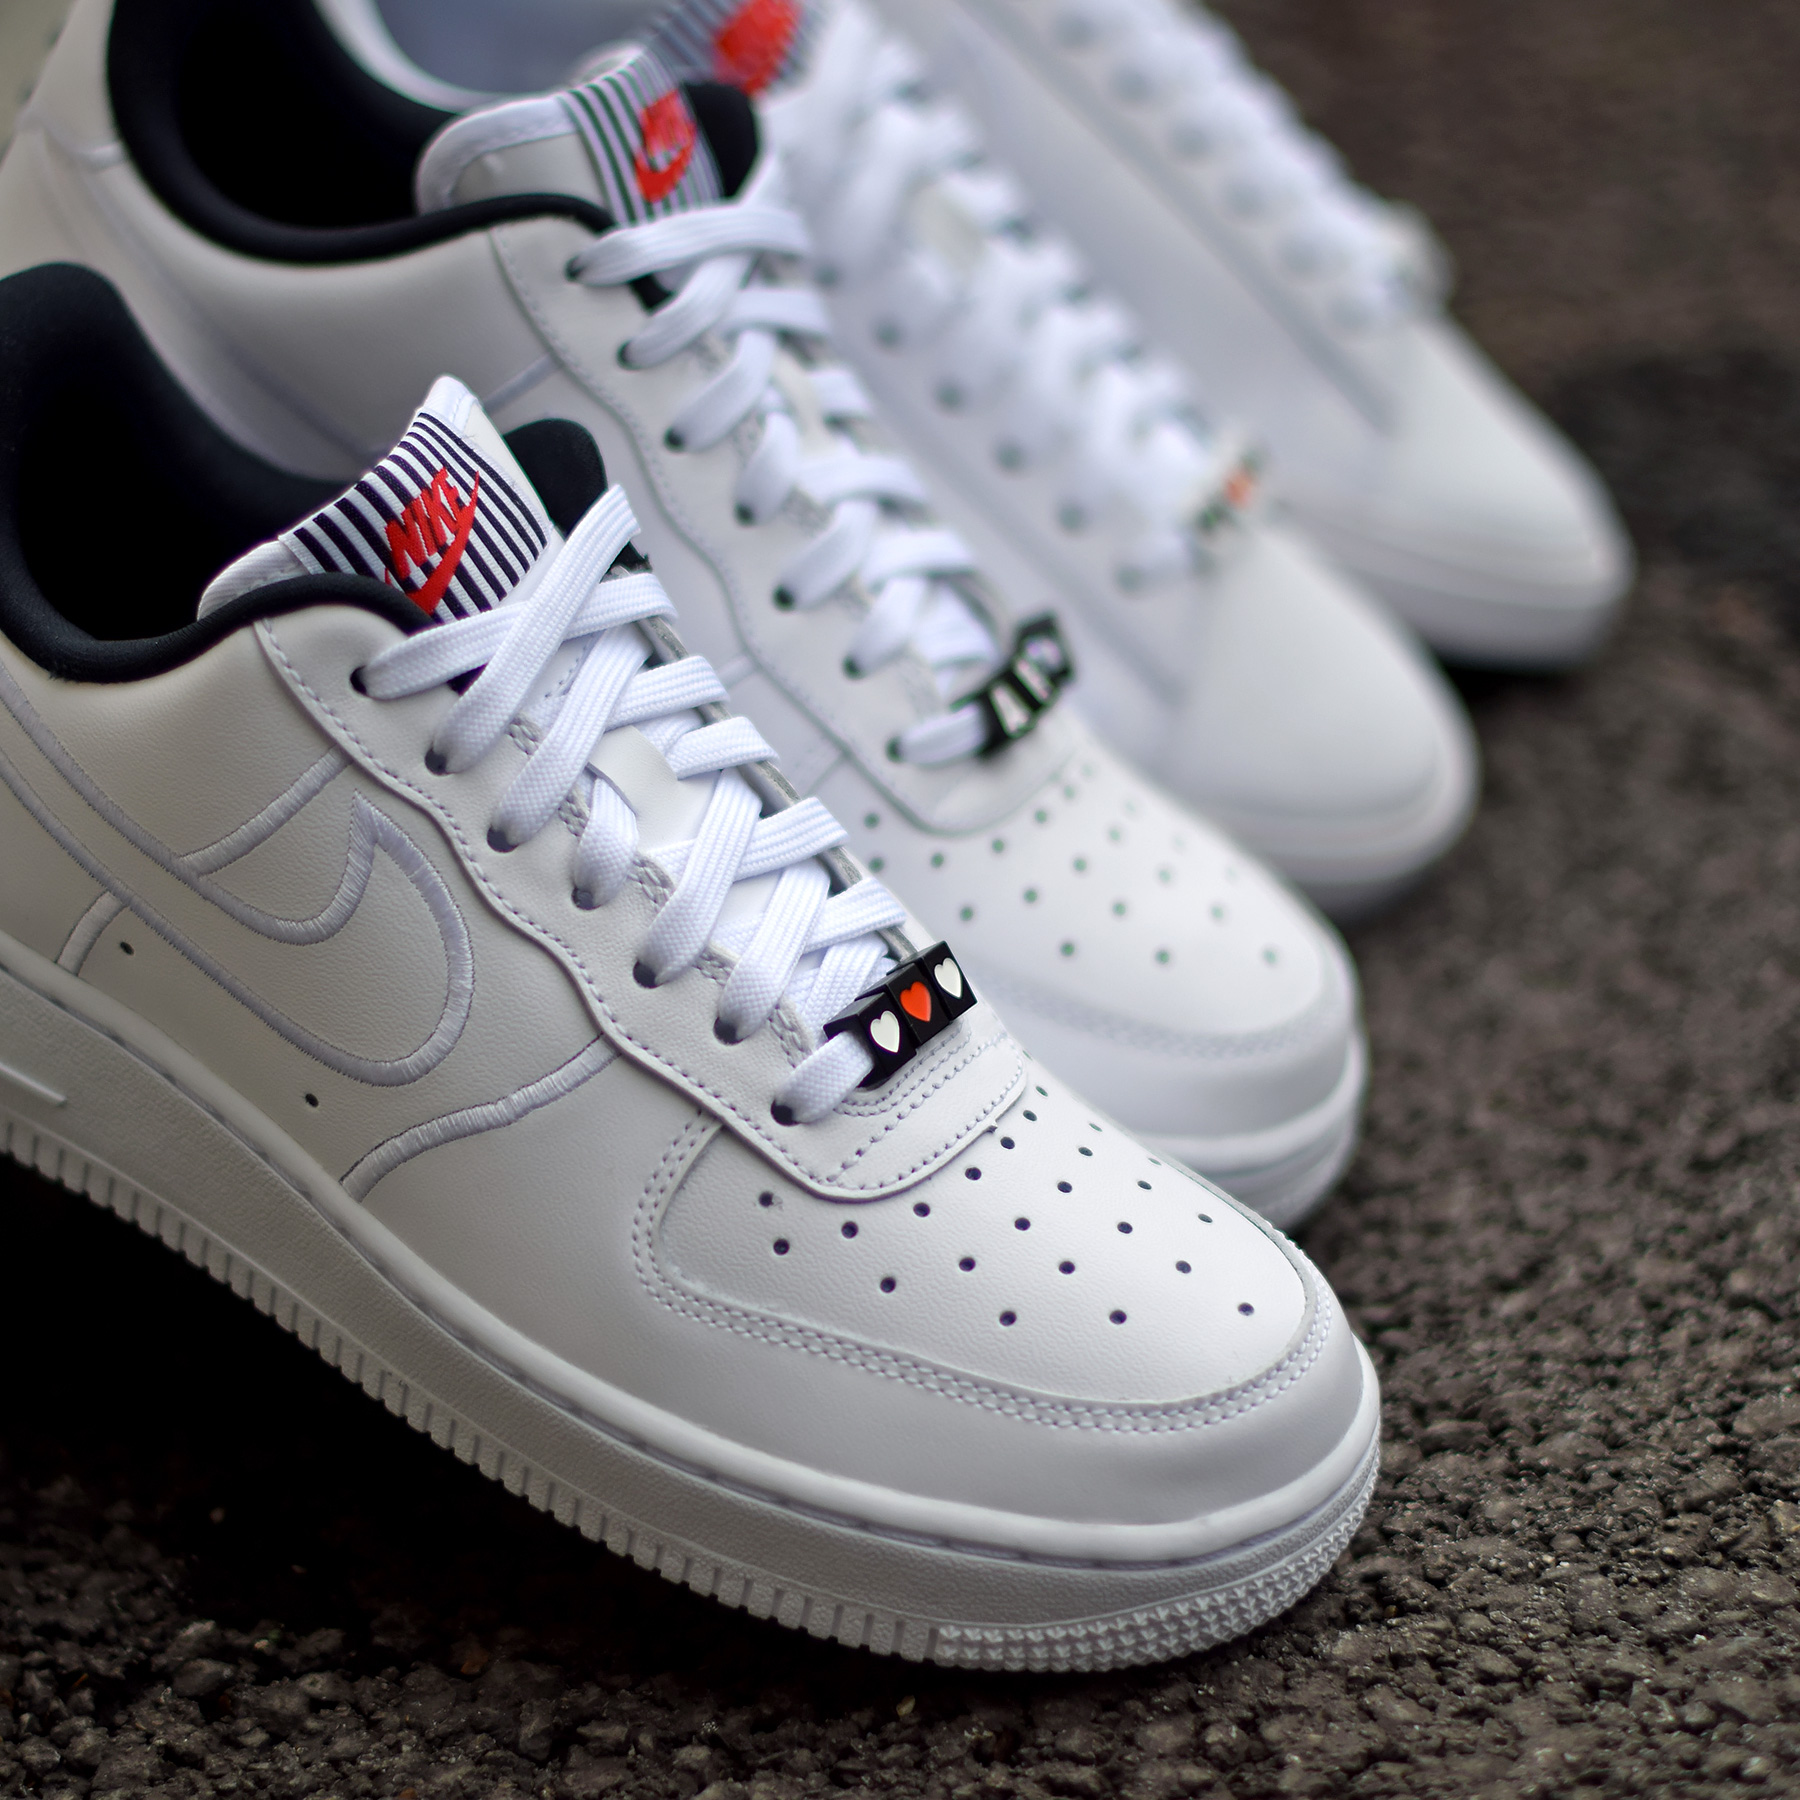 online store dac92 6ebb8 ... release date both the nike air force 1 low and nike blazer low  valentines day will